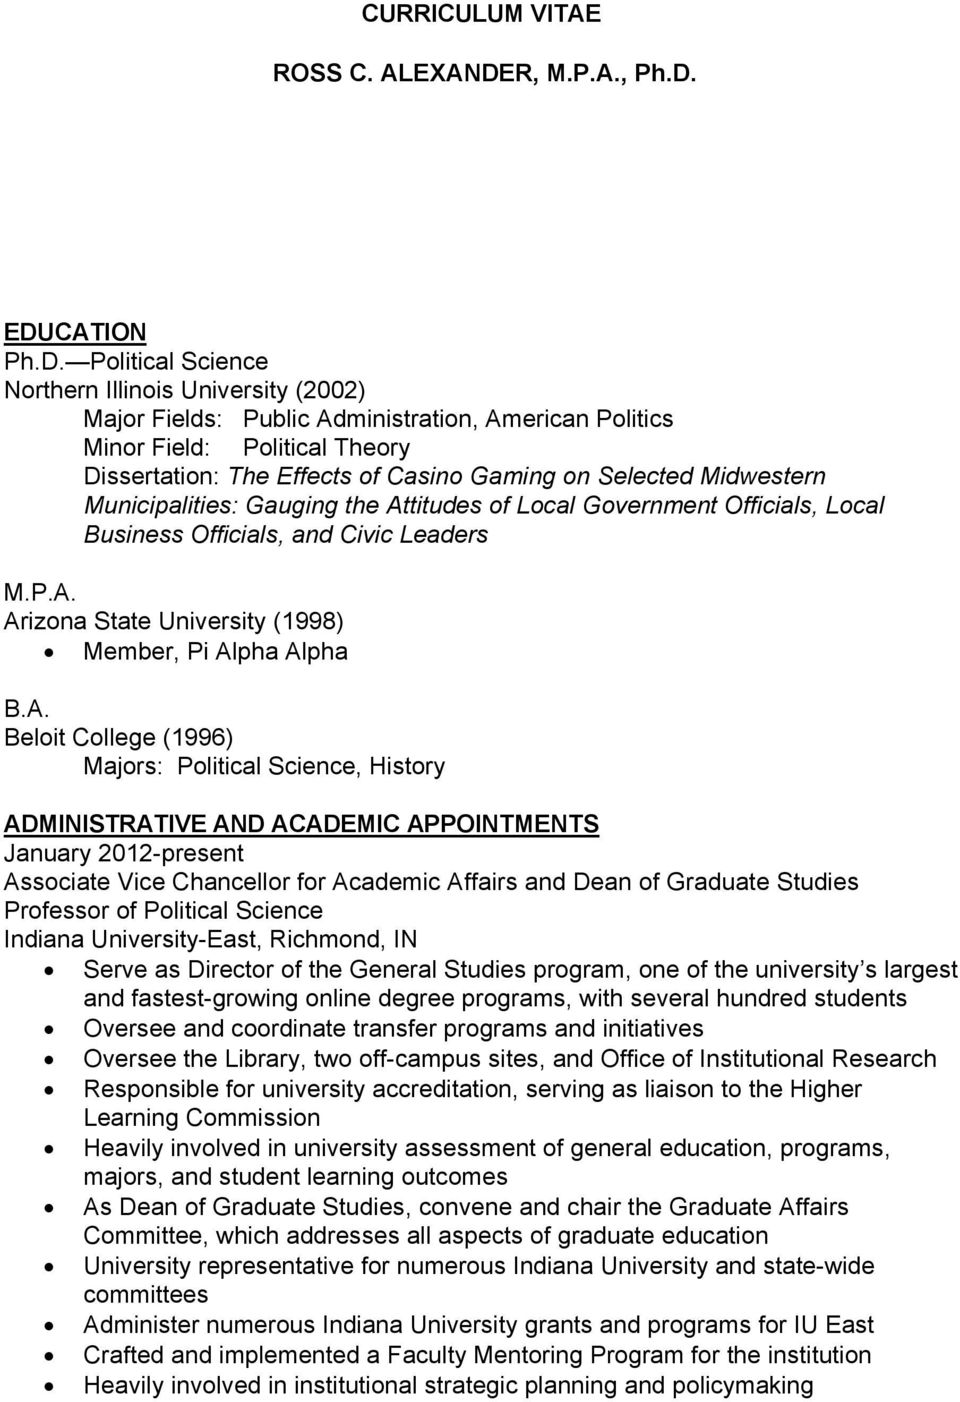 EDUCATION Ph.D. Political Science Northern Illinois University (2002) Major Fields: Public Administration, American Politics Minor Field: Political Theory Dissertation: The Effects of Casino Gaming